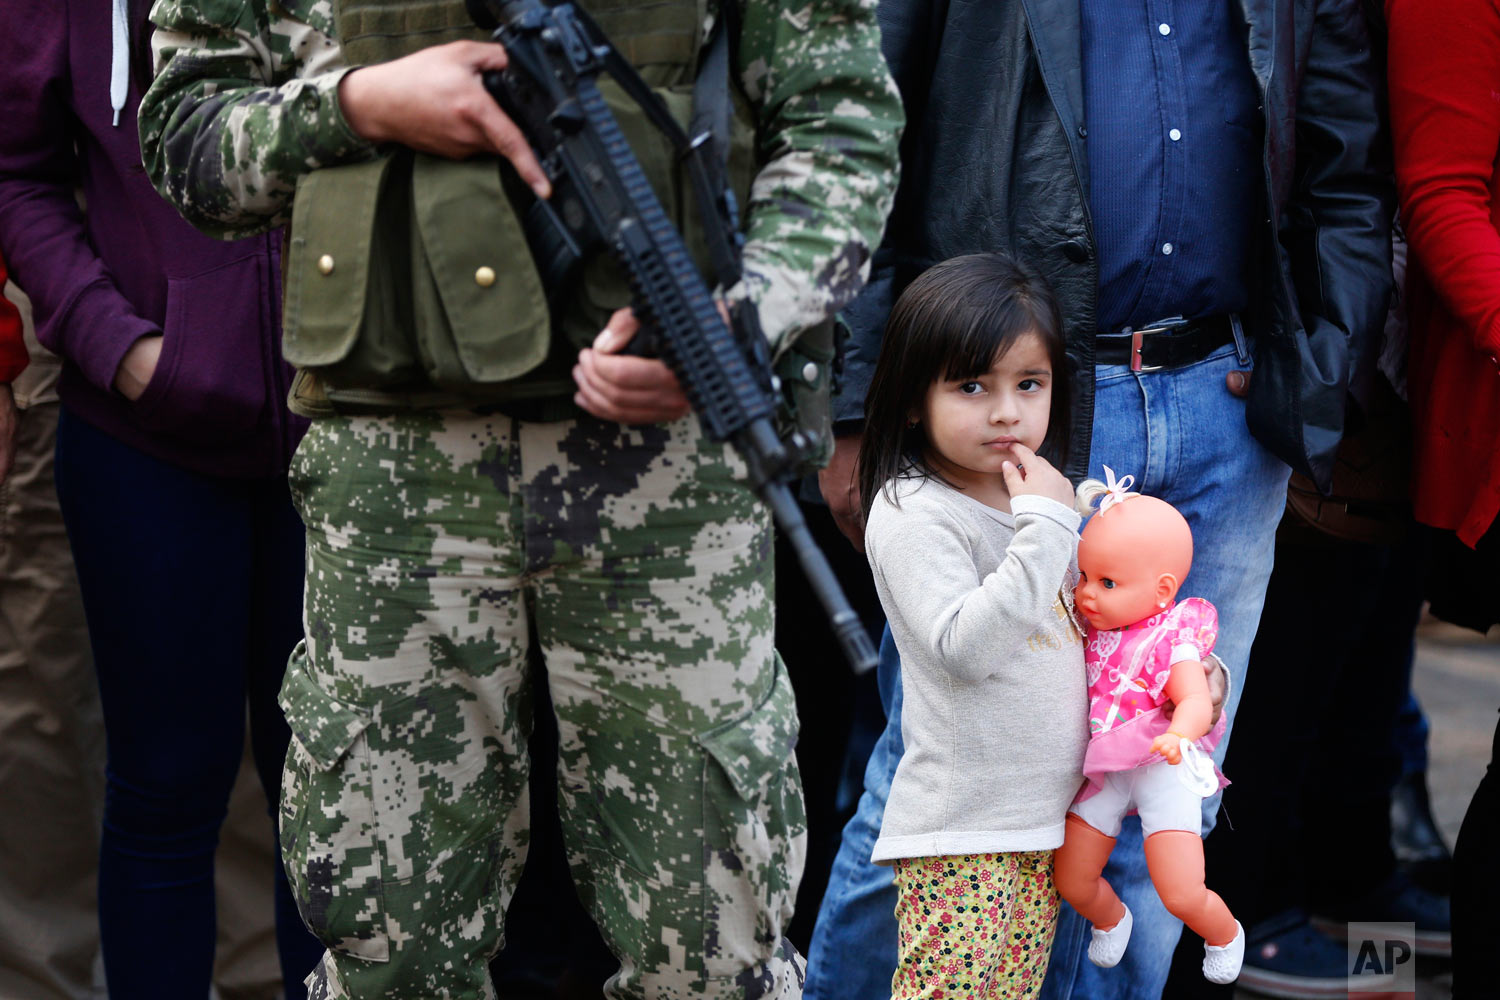 A girl holding her doll watches a military parade marking the 481th anniversary of the founding of Asuncion, Paraguay, Aug. 15, 2018. Paraguay's new President Mario Abdo Benitez was sworn-in before the parade. (AP Photo/Jorge Saenz)